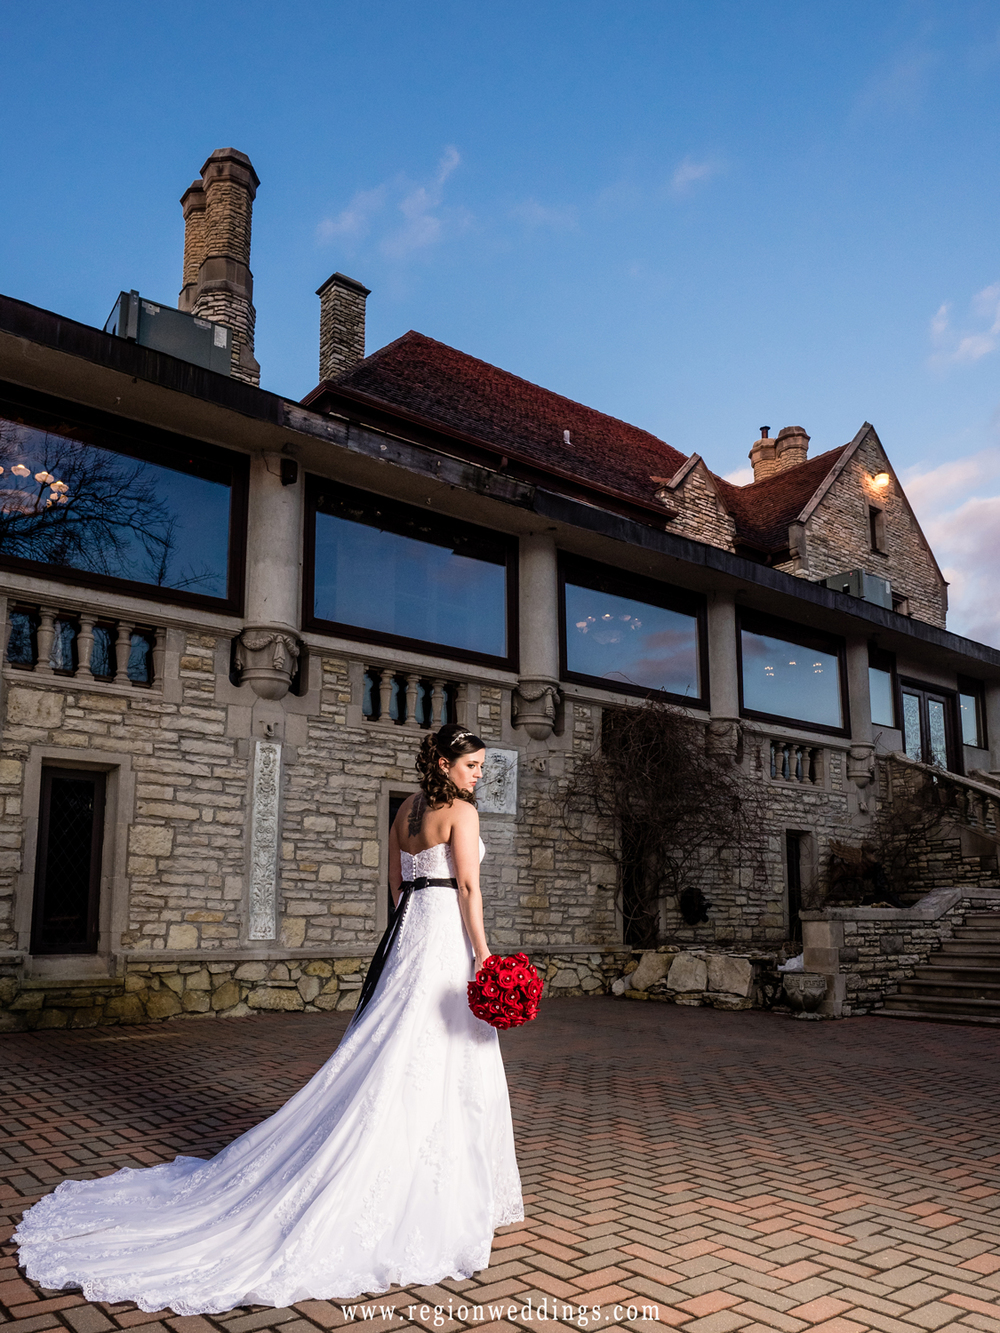 The bride shows off her dress on the patio terrace of Meyer's Castle.